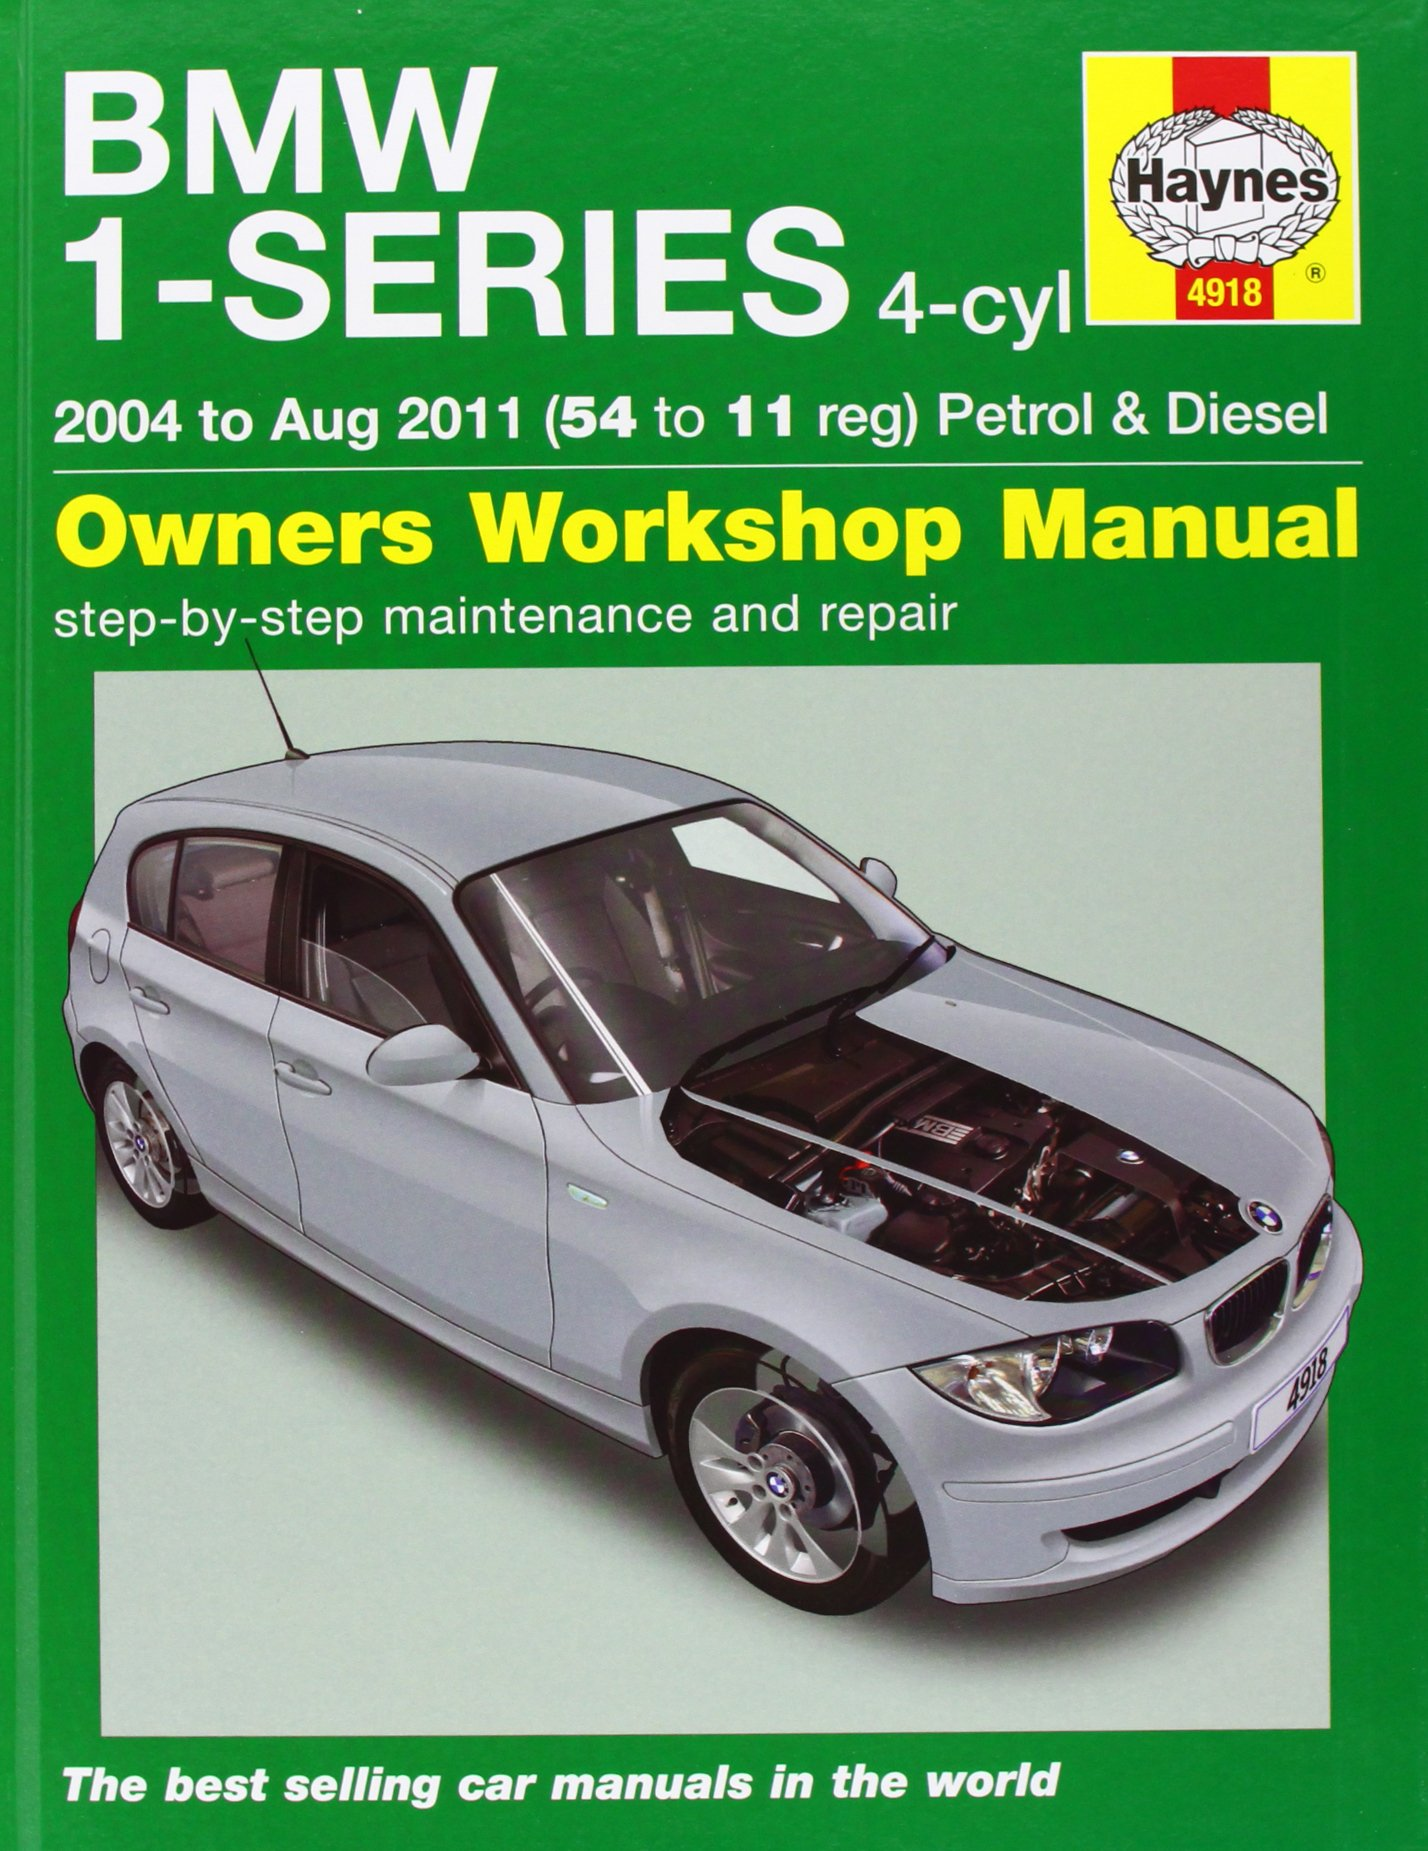 Bmw 1 series 4 cyl petrol diesel service repair manual 2004 to 2011 haynes service and repair manuals amazon co uk martynn randall 9781844259182